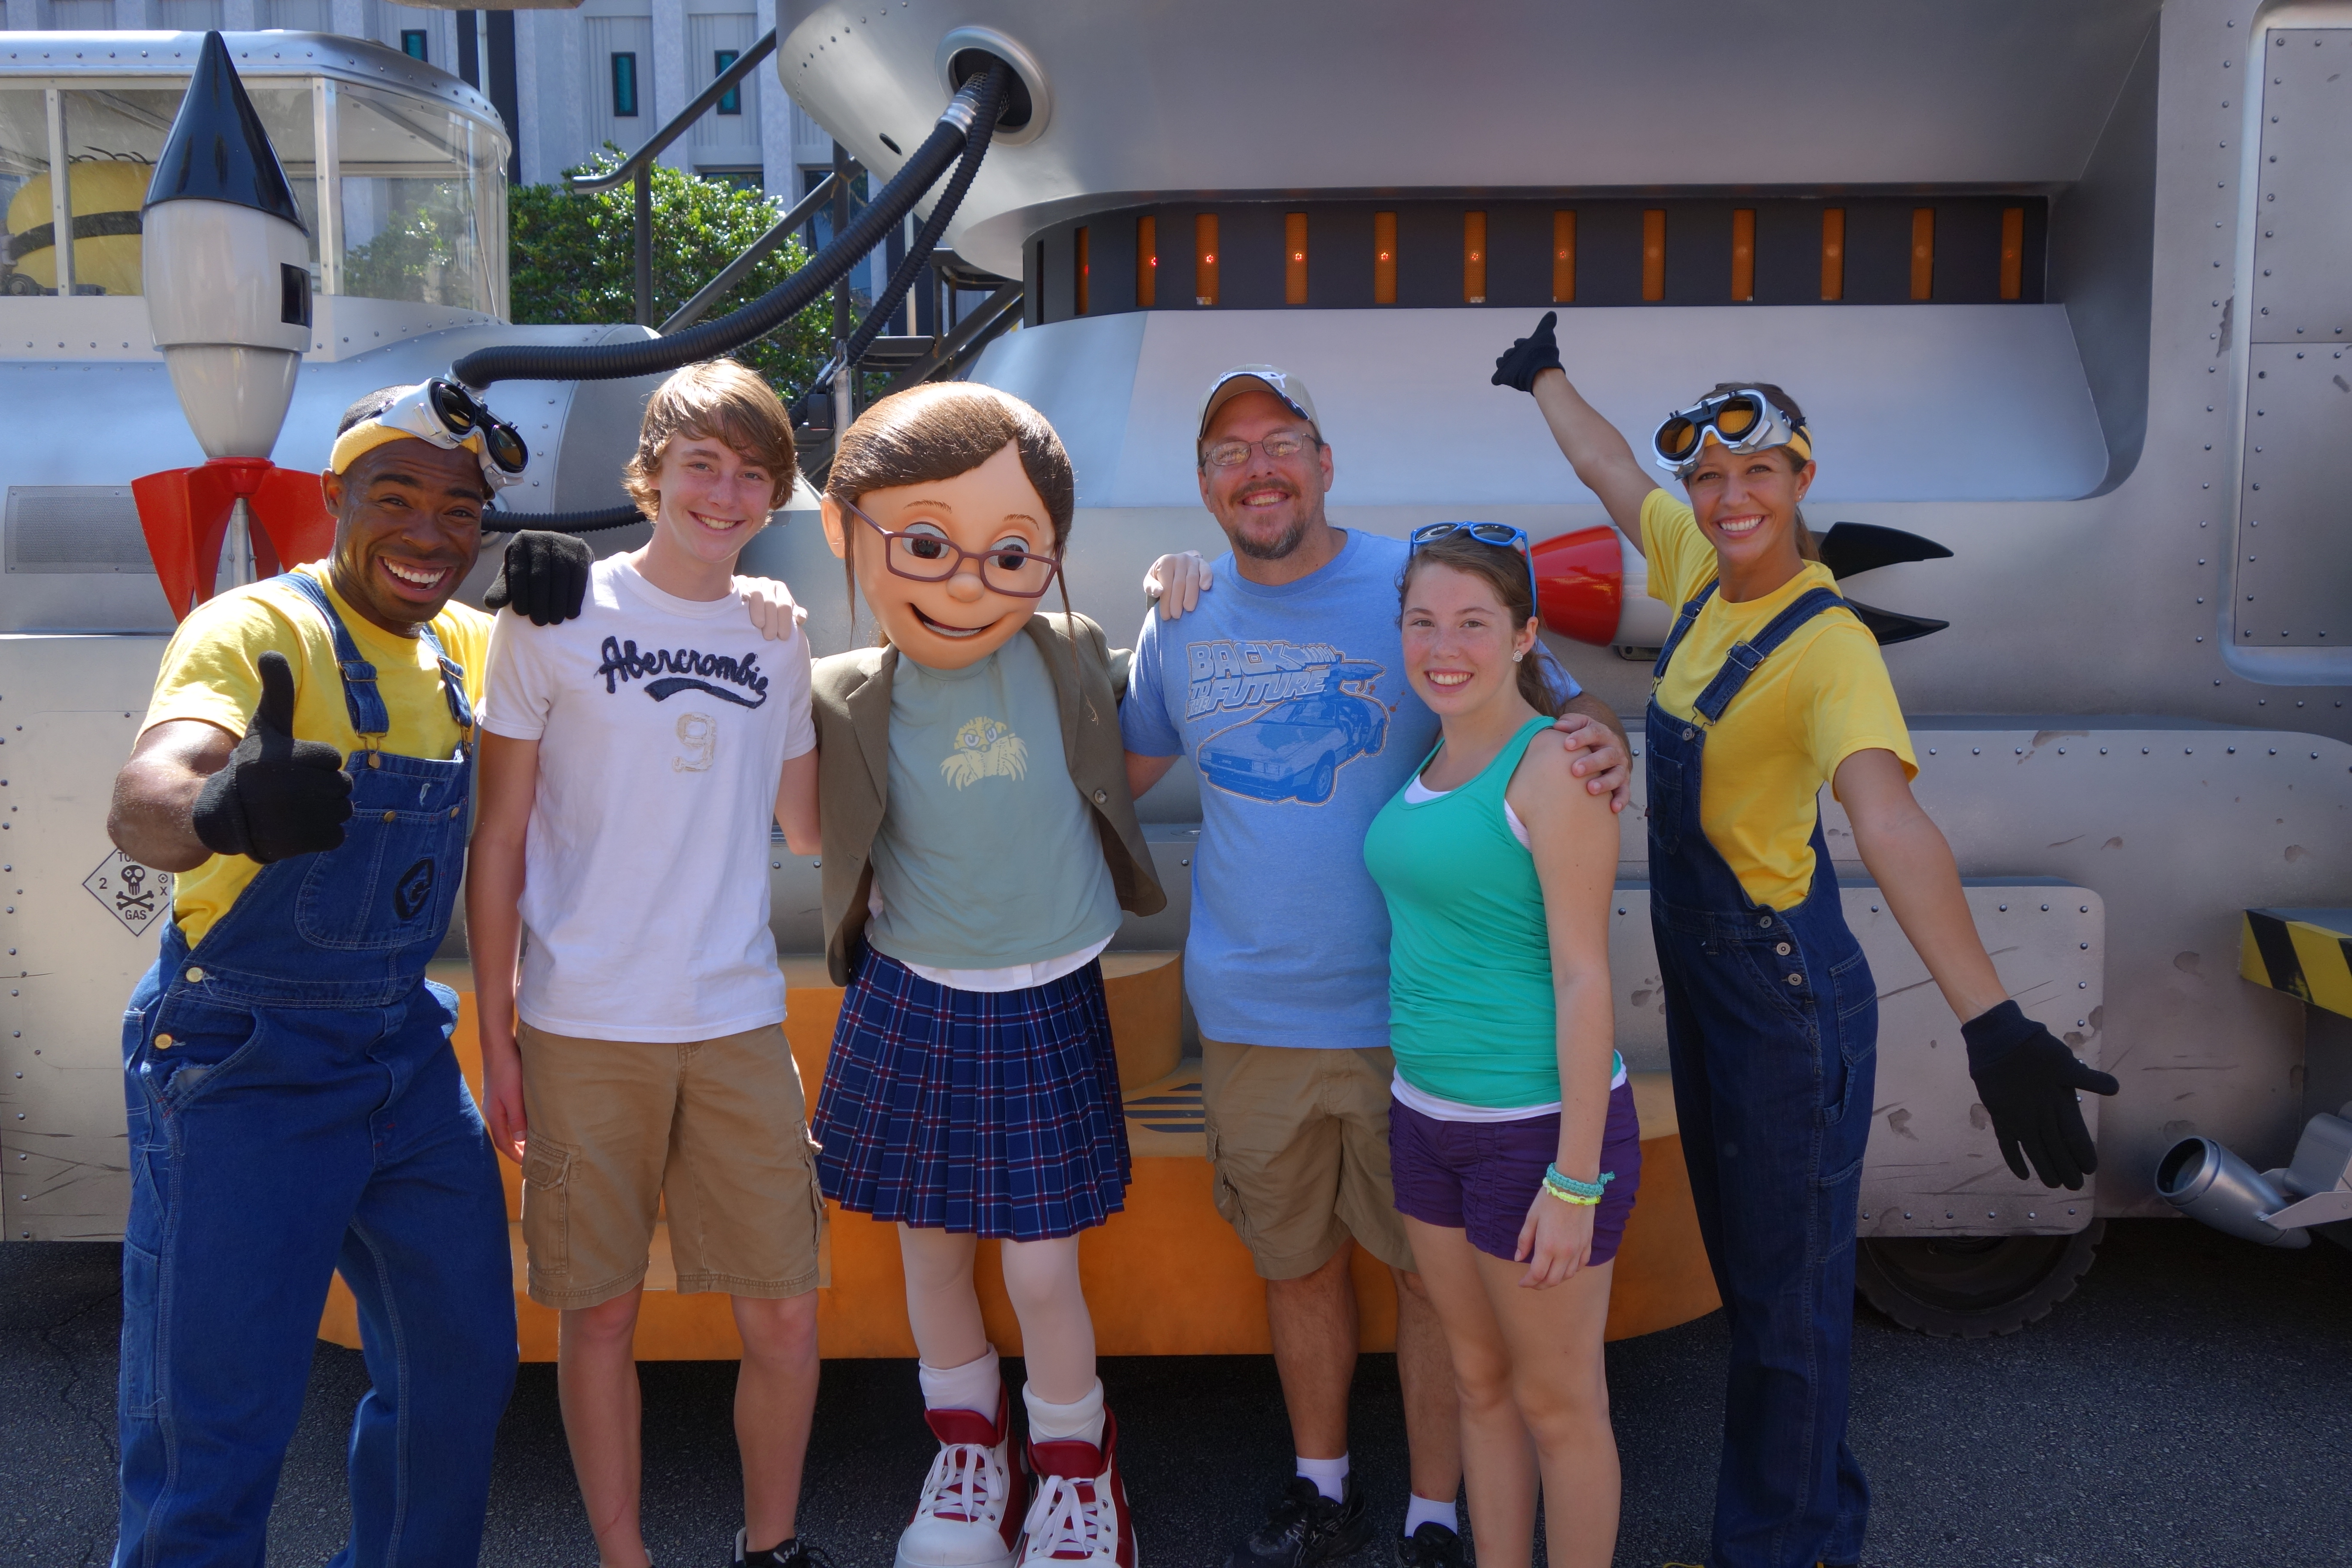 Universal orlando character meet and greets kennythepirates margo from despicable me june 2013 kristyandbryce Gallery